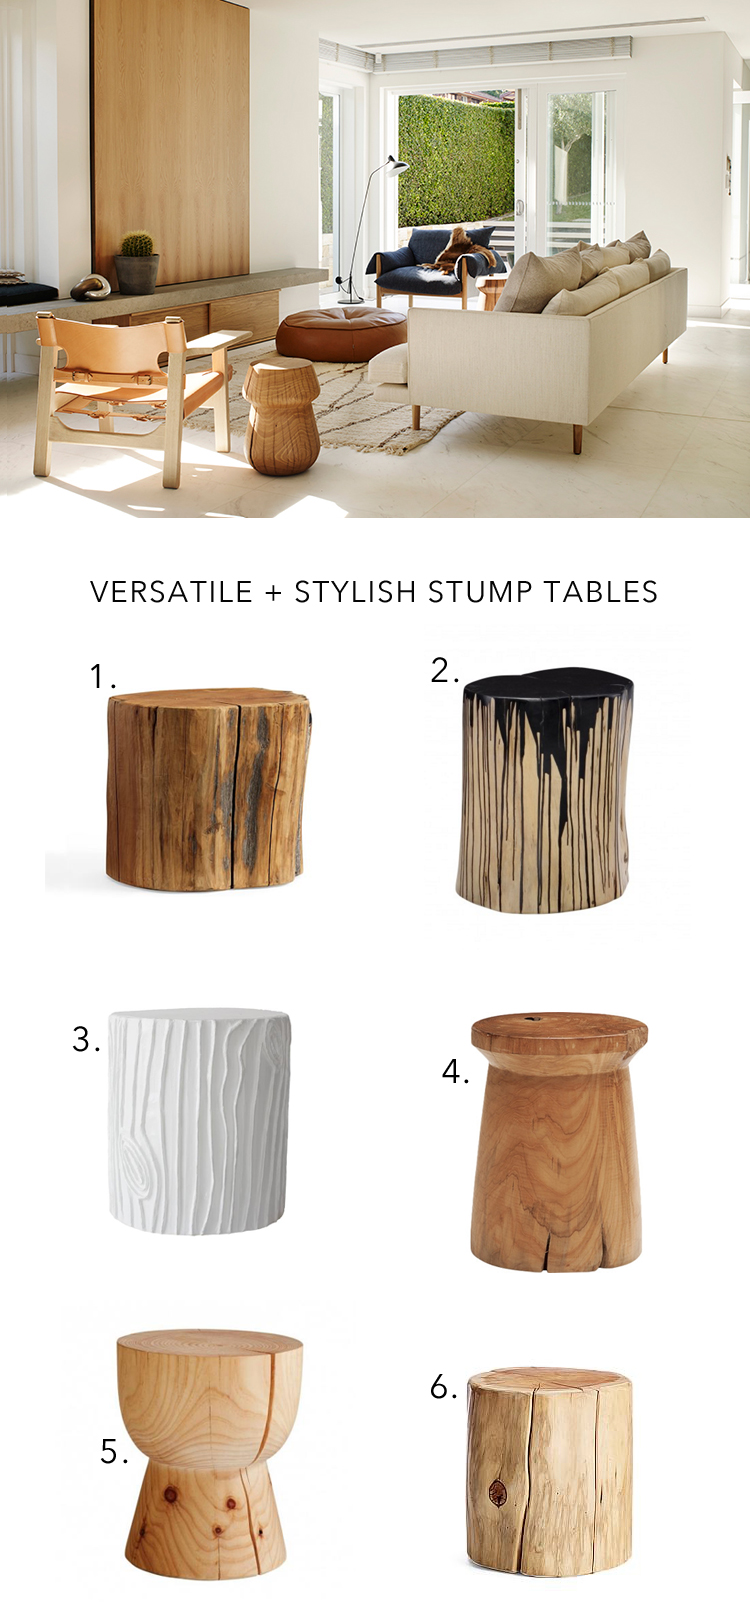 The Best Stump Tables For Modern And Boho Decor Via @citysage